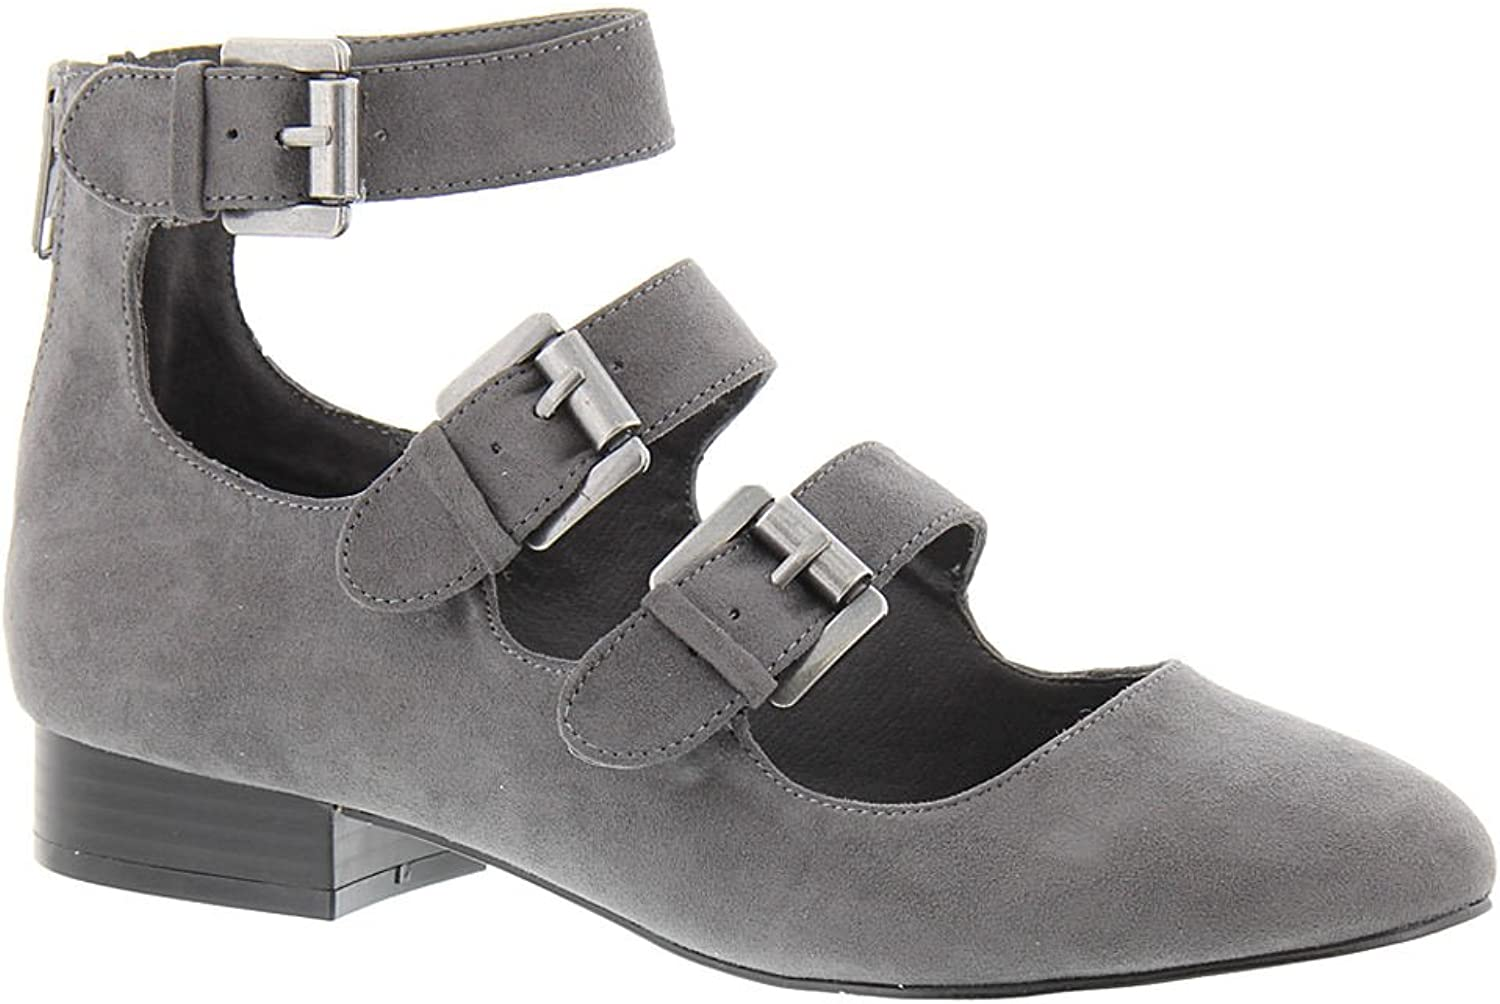 MIA Womens Luisa Closed Toe Casual Ankle Strap Sandals, Charcoal, Size 8.5